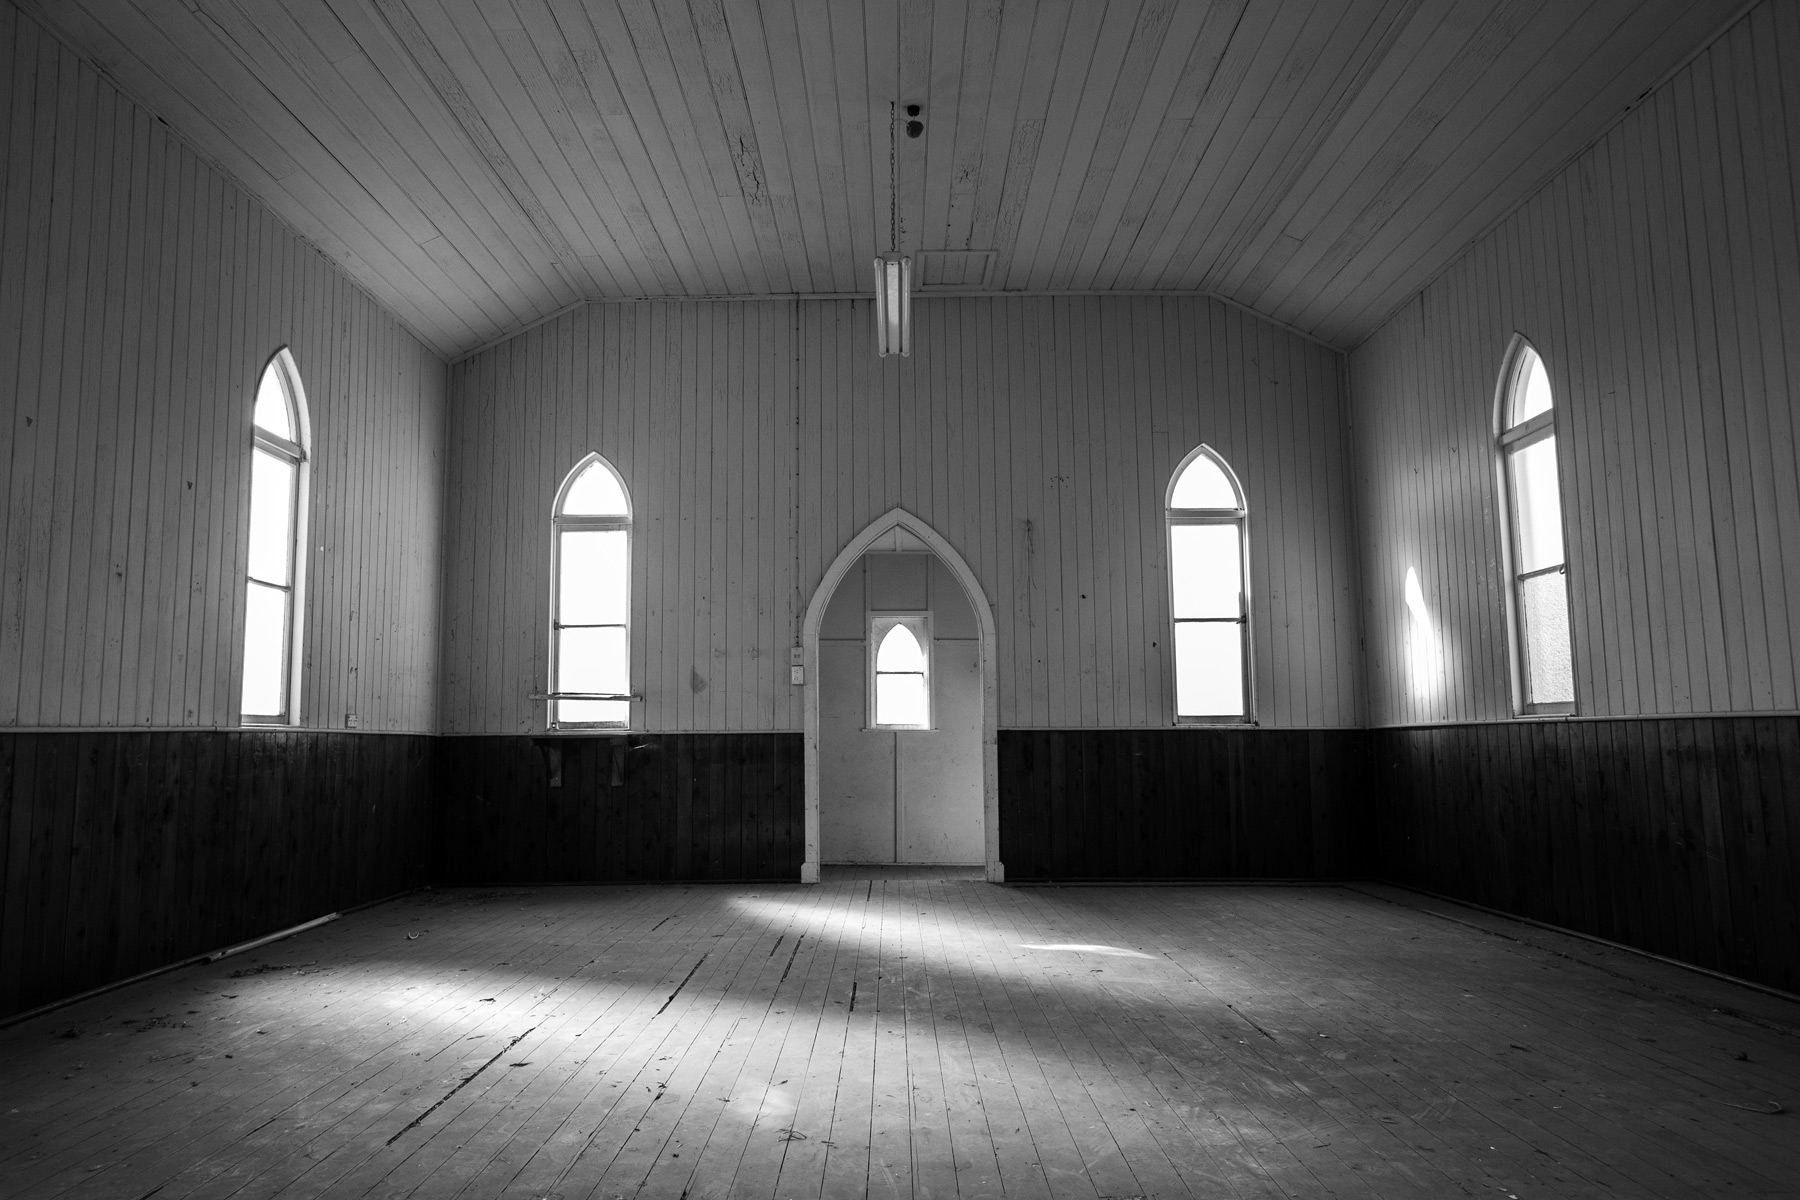 Inside an abandoned church in Acland